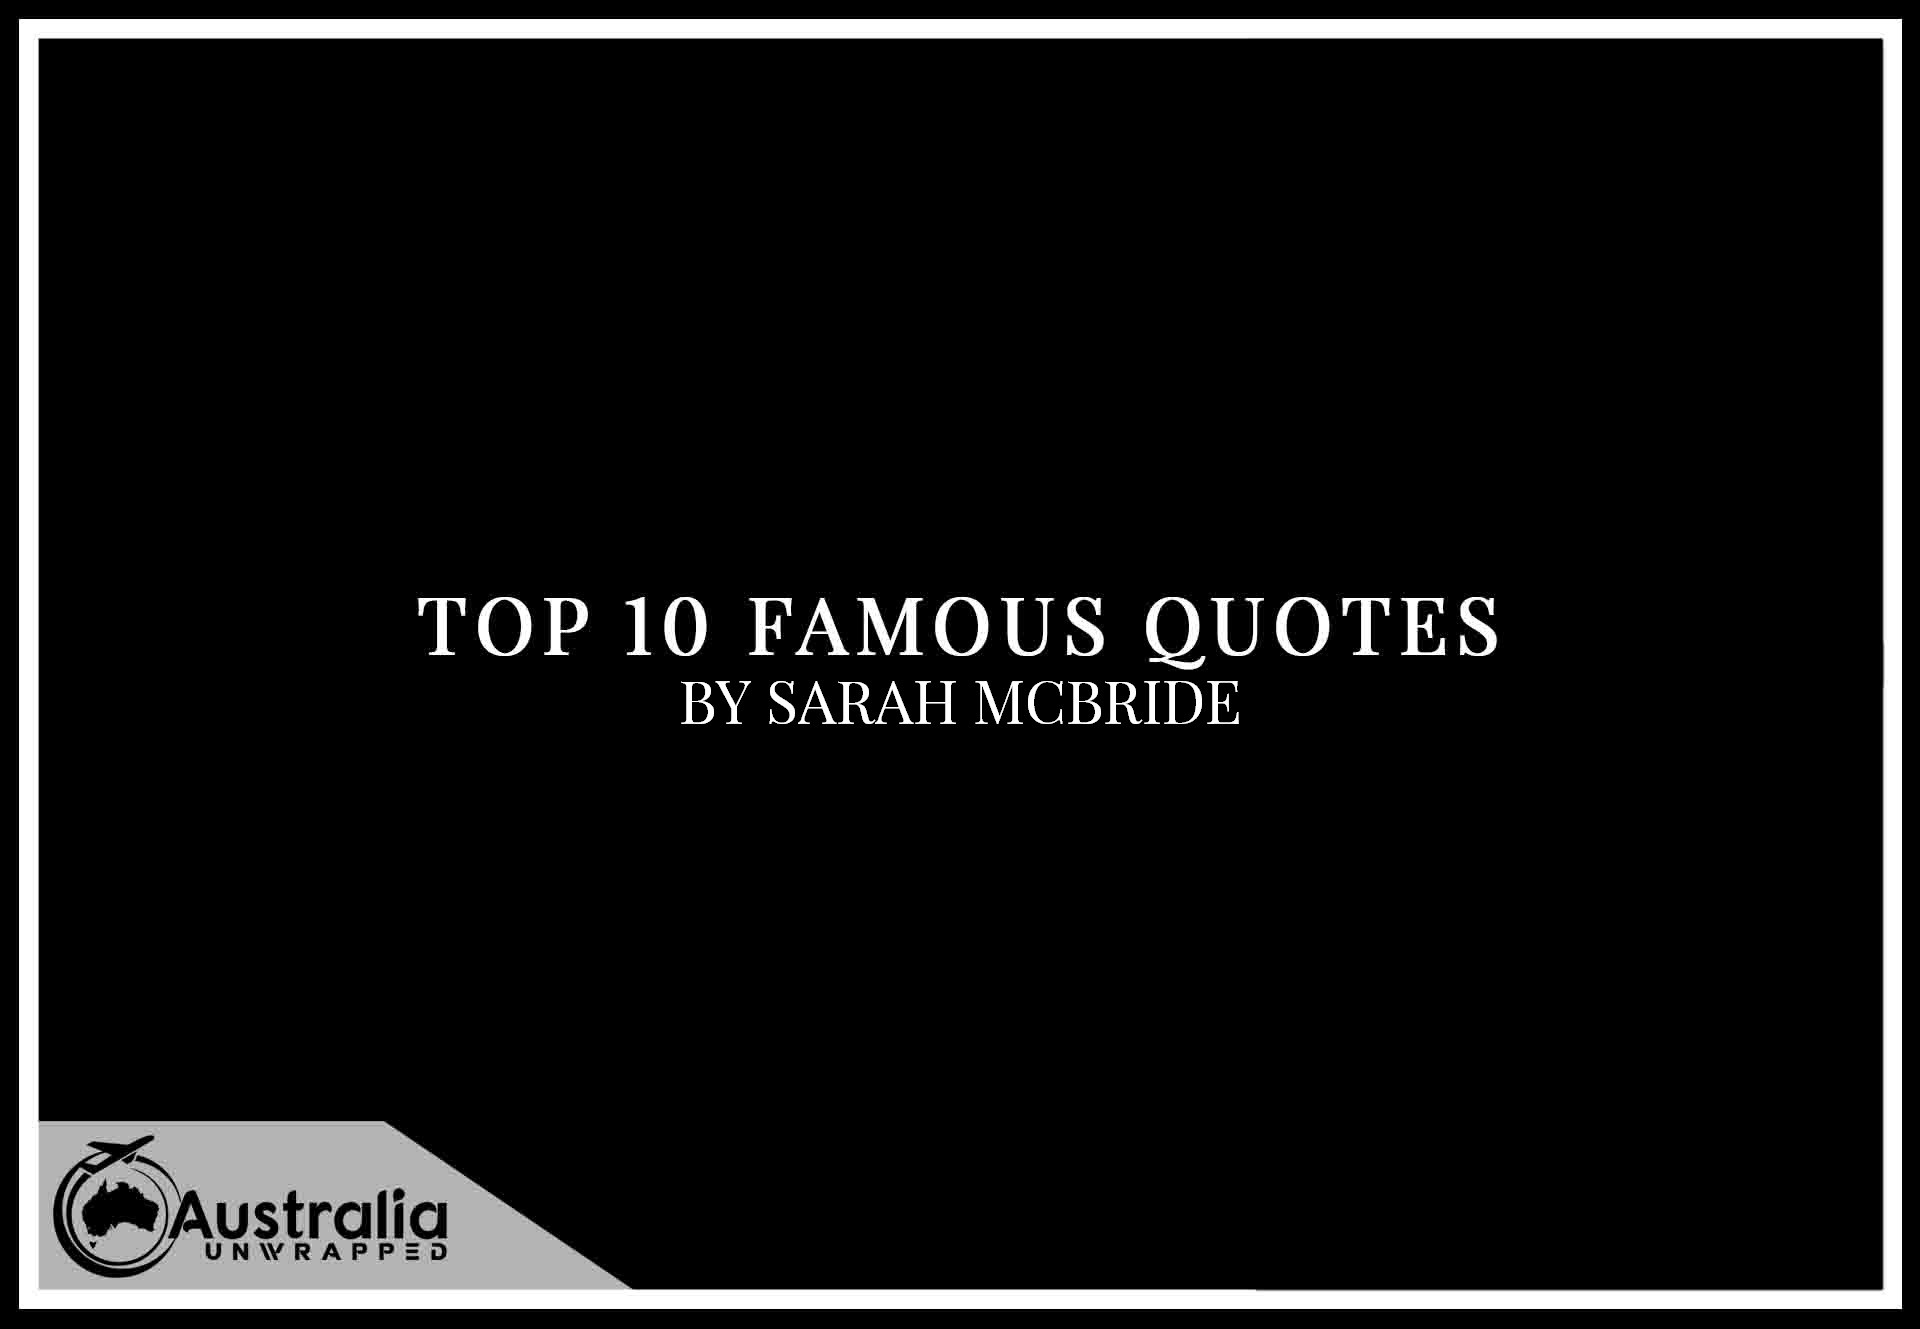 Top 10 Famous Quotes by Author Sarah McBride